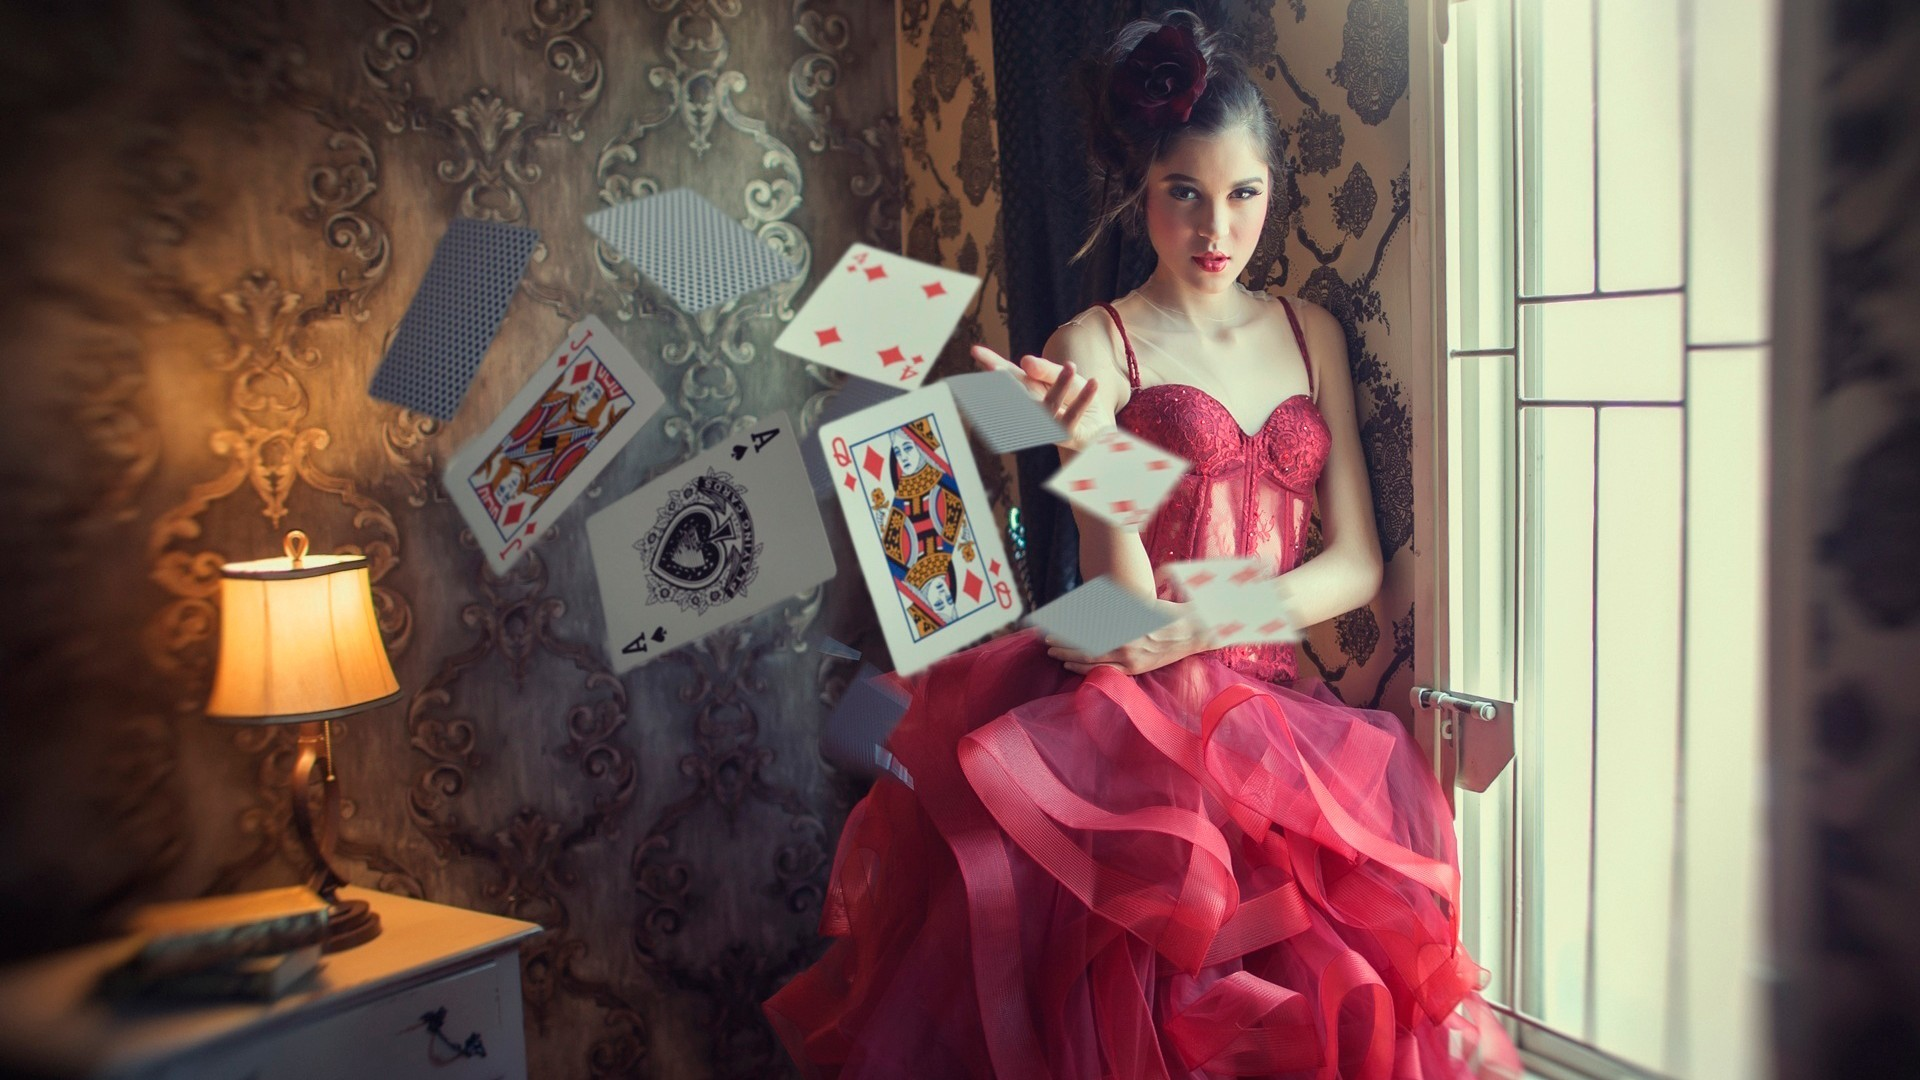 Anime Girl Playing Game Wallpaper Photography Red Dress Room Playing Cards Ace Of Spades